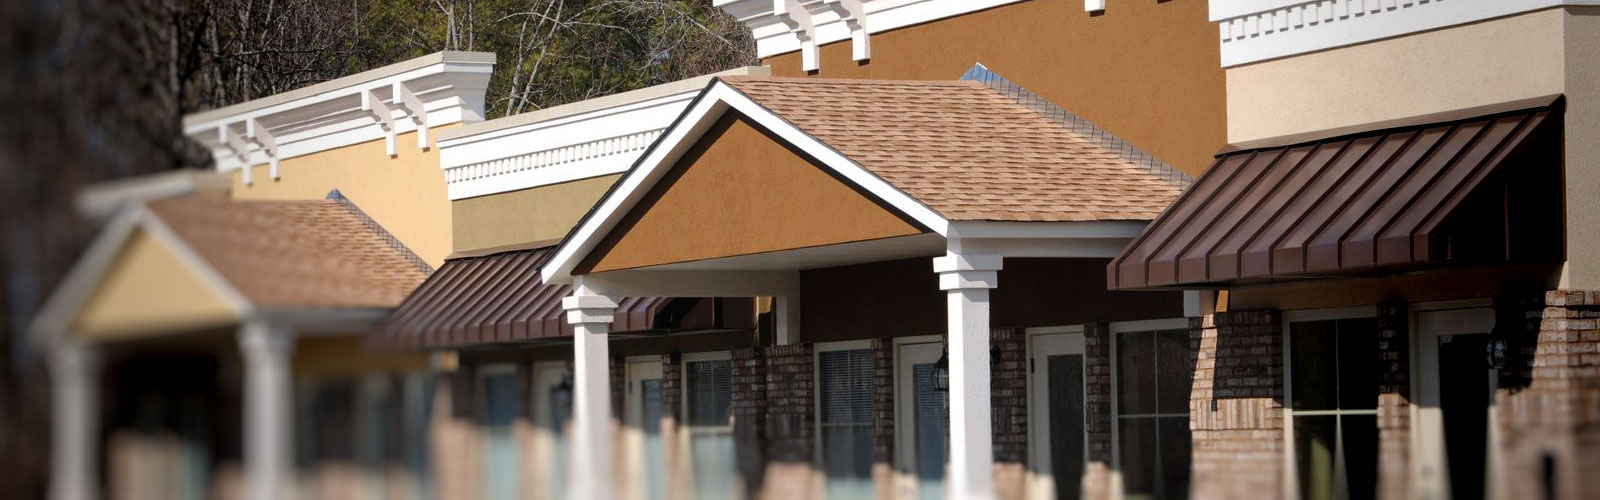 Monarch Roofing Roofing Contractors Company Free